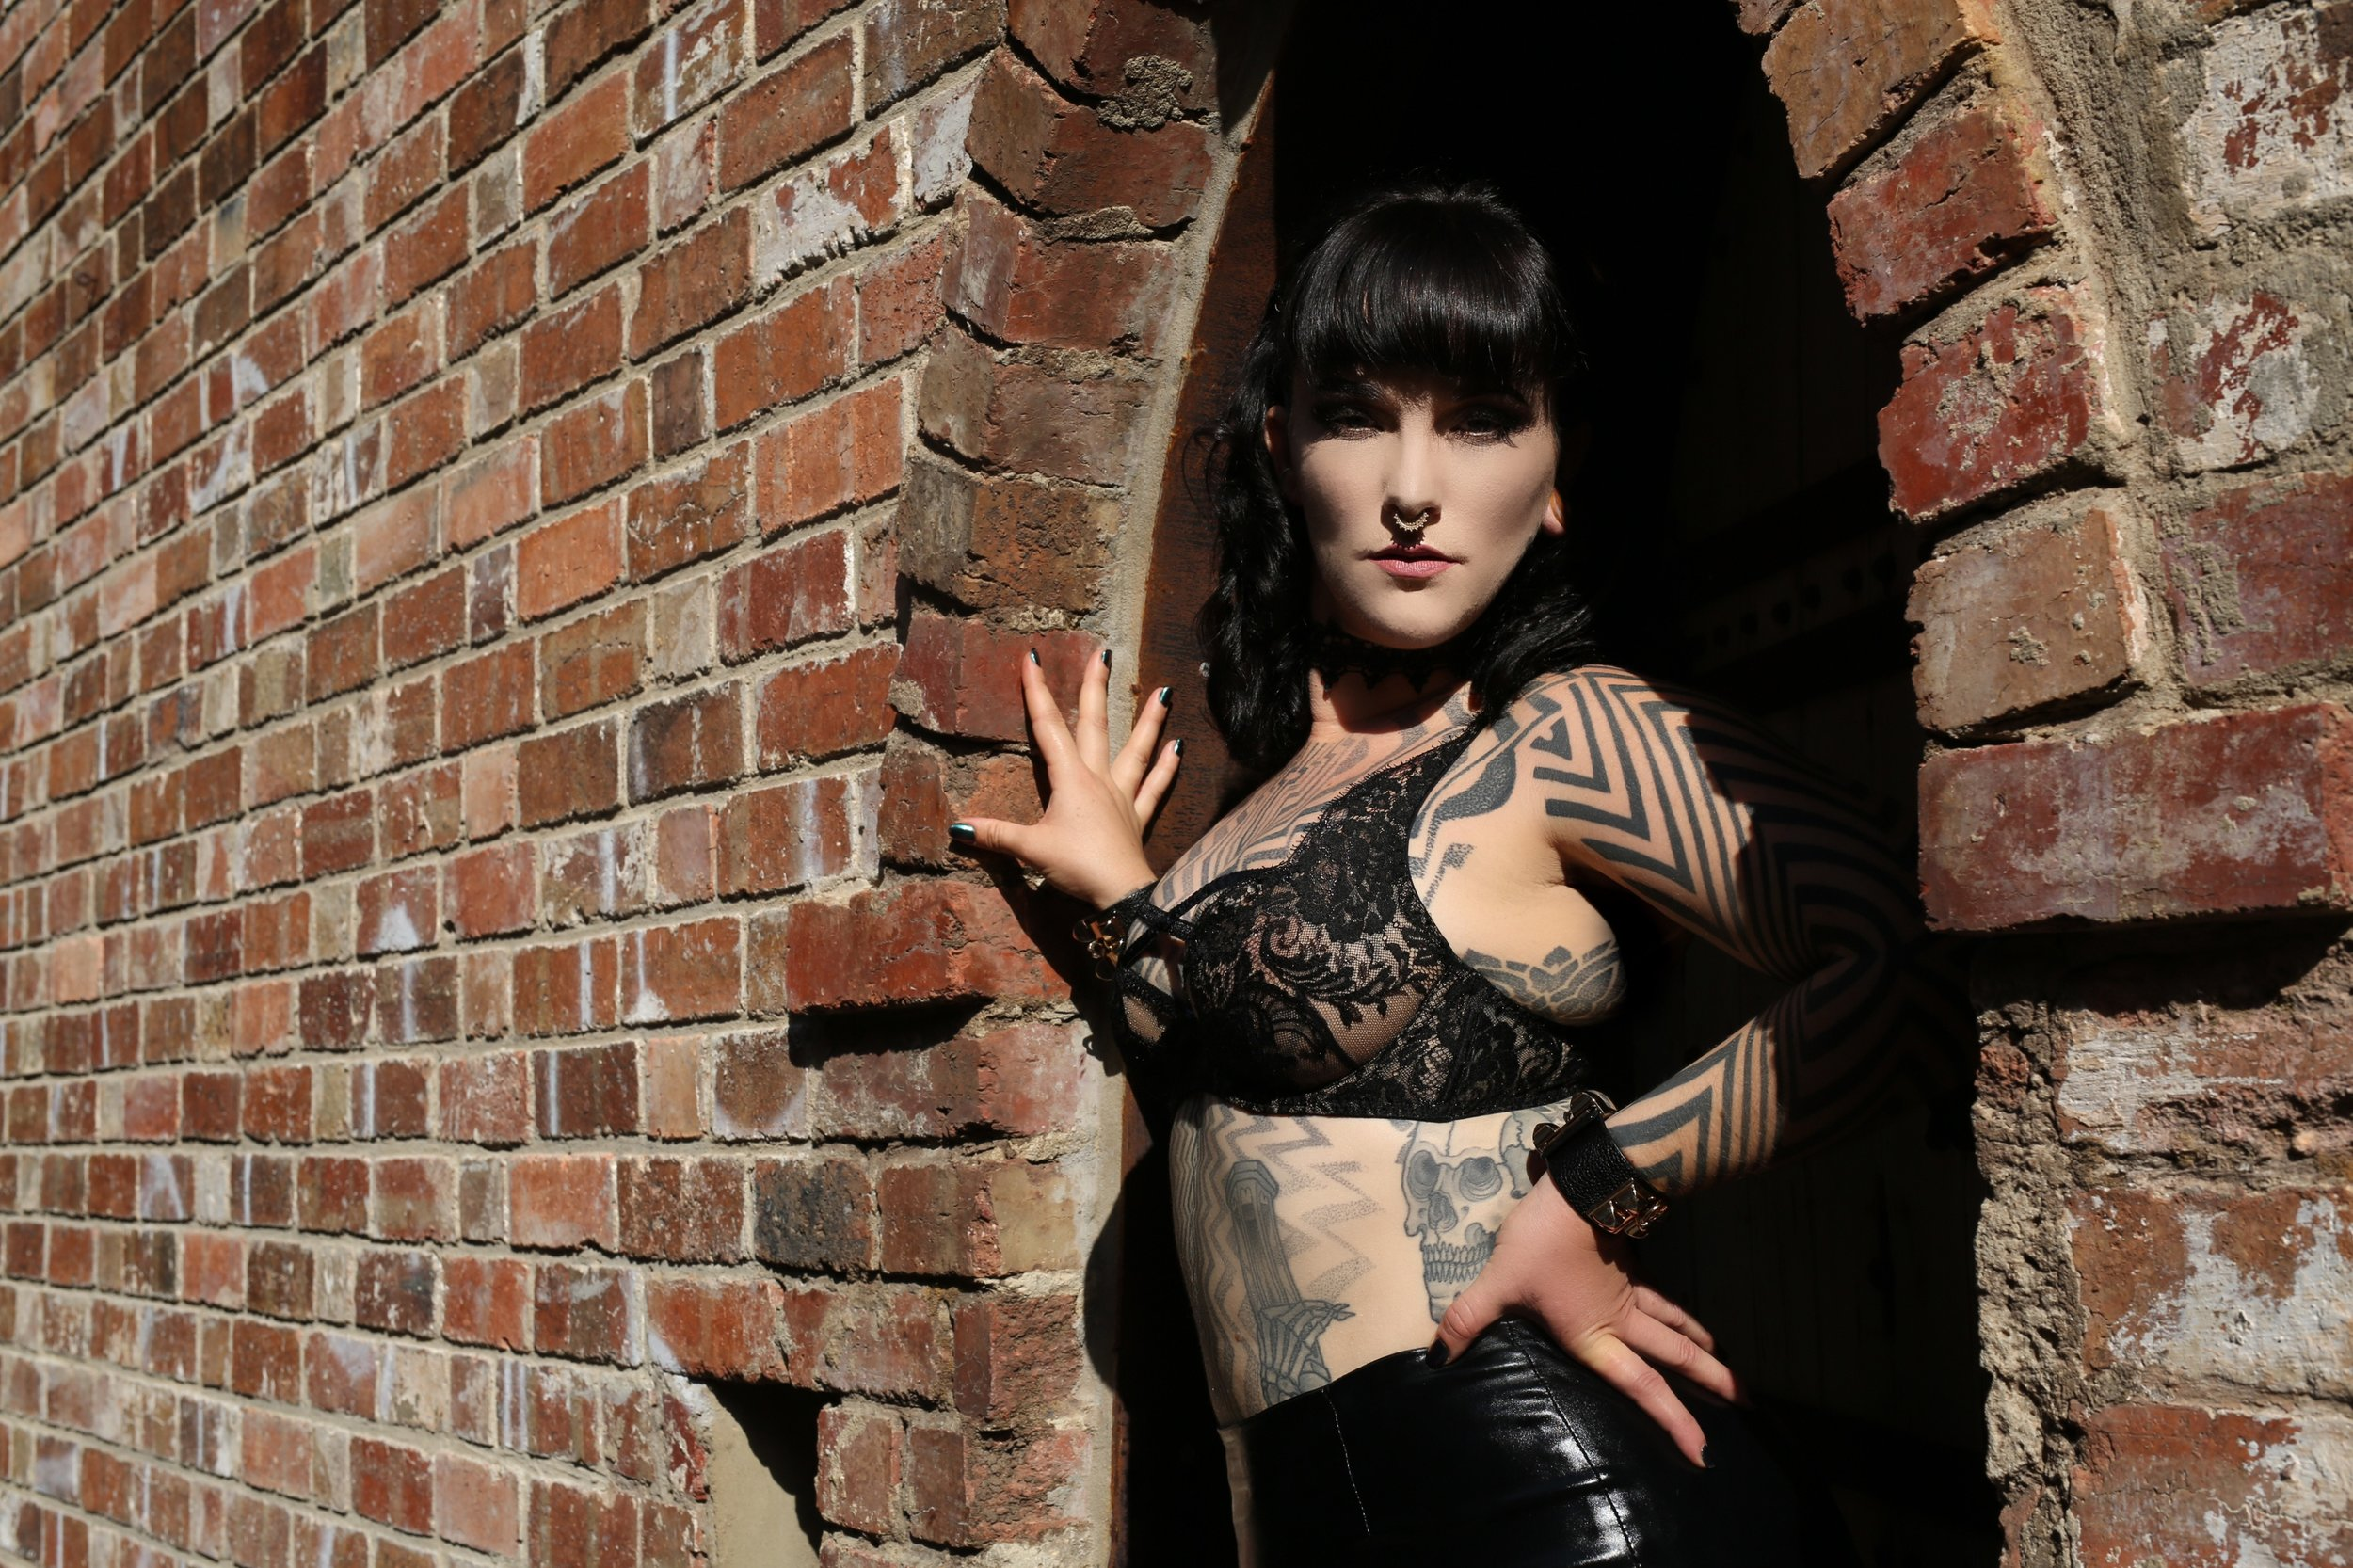 Exclusive Long Term Lover Relationships with Tattooed Kinky Escort and Dominatrix English Mistress